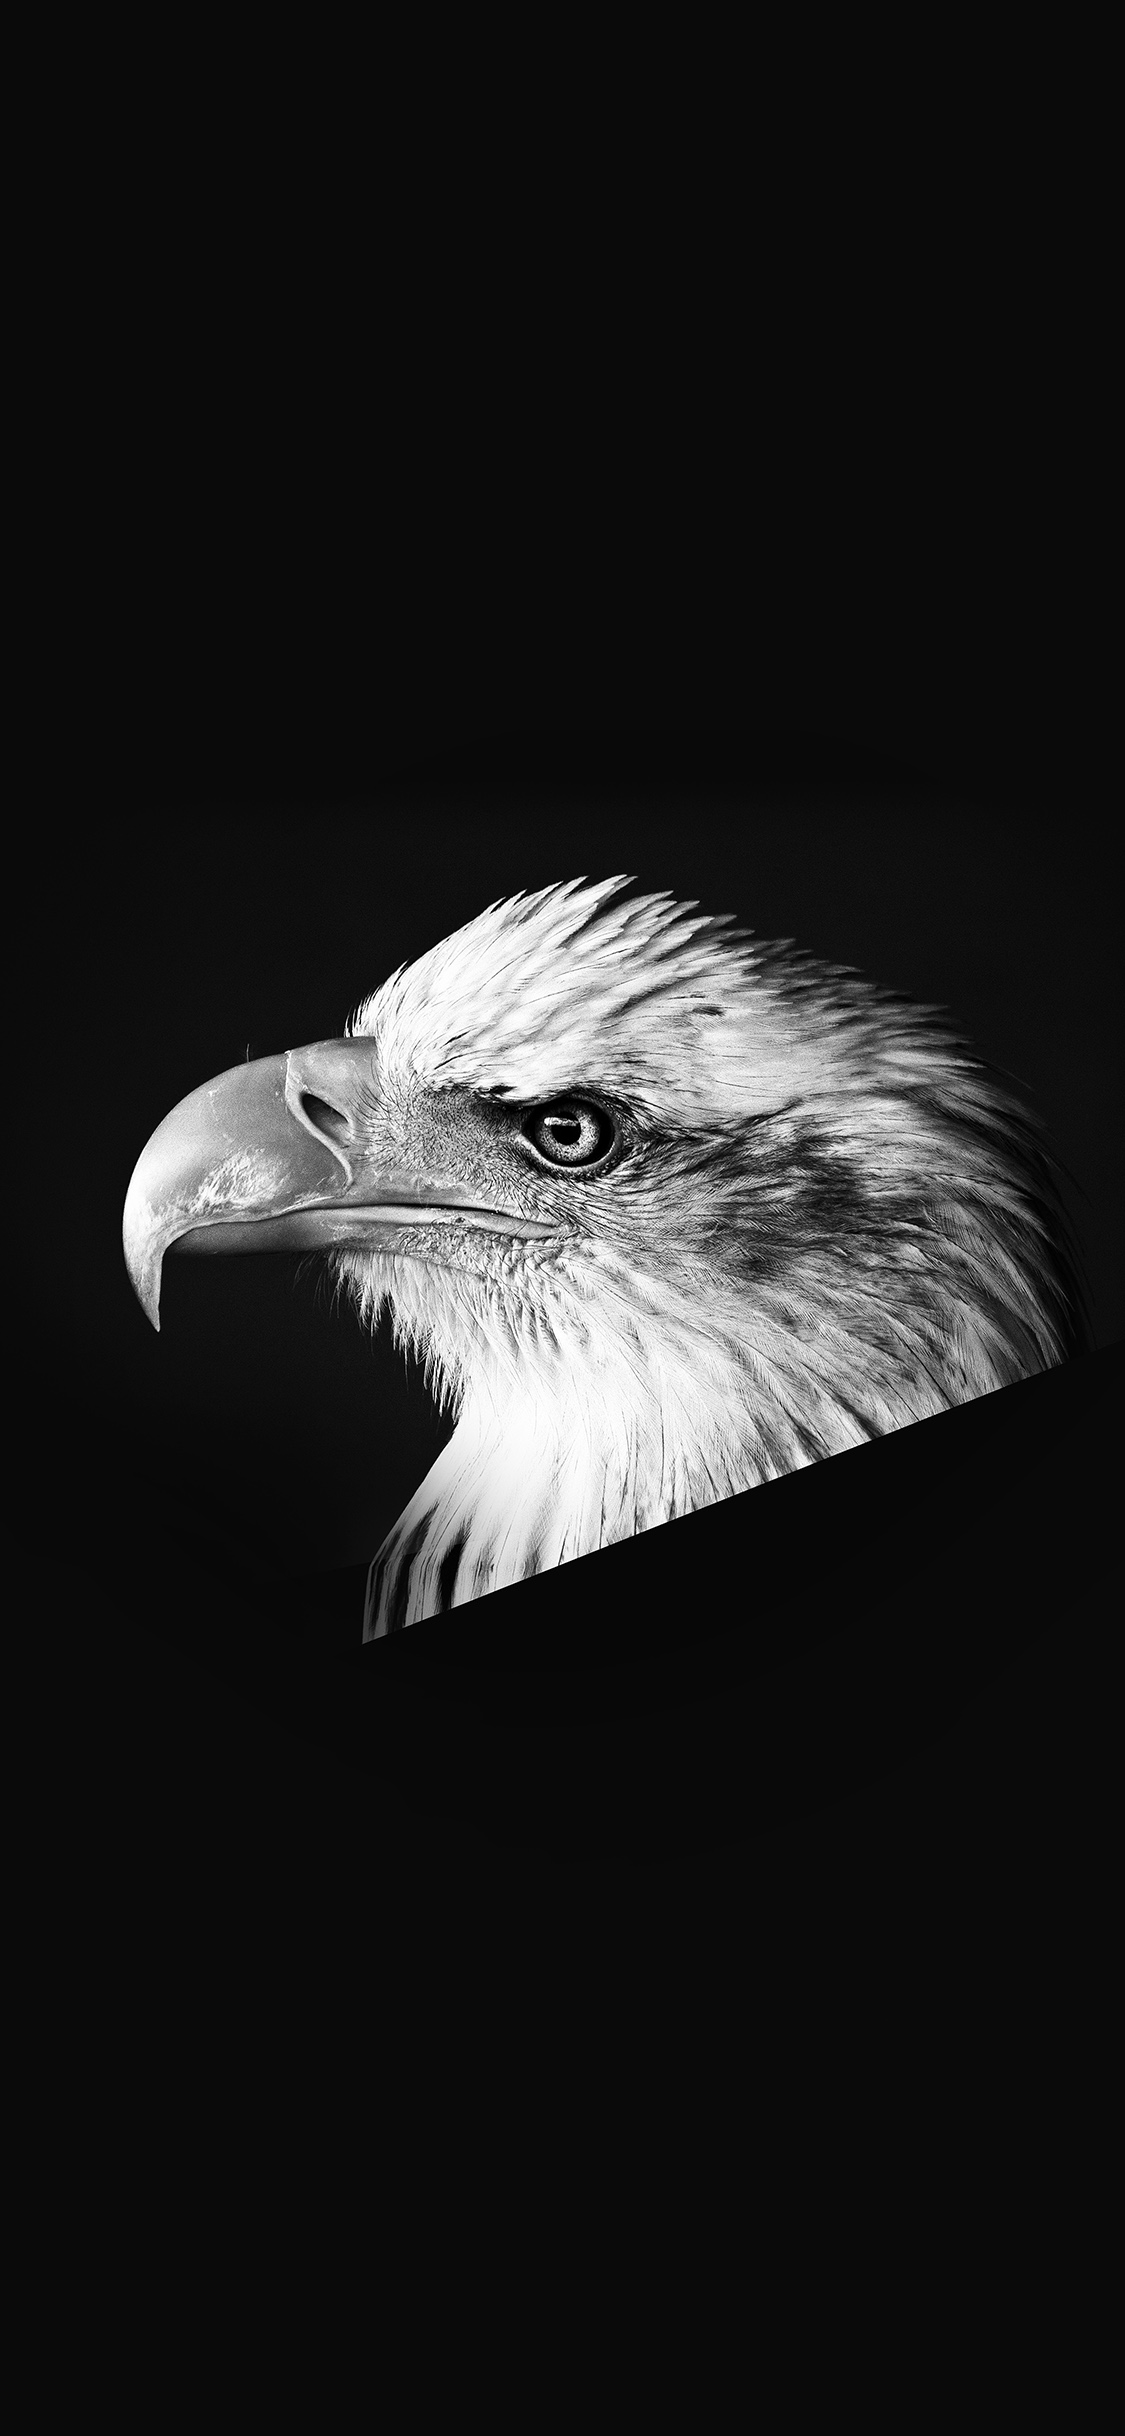 iPhoneXpapers.com-Apple-iPhone-wallpaper-mr65-eagle-dark-animal-bird-face-bw